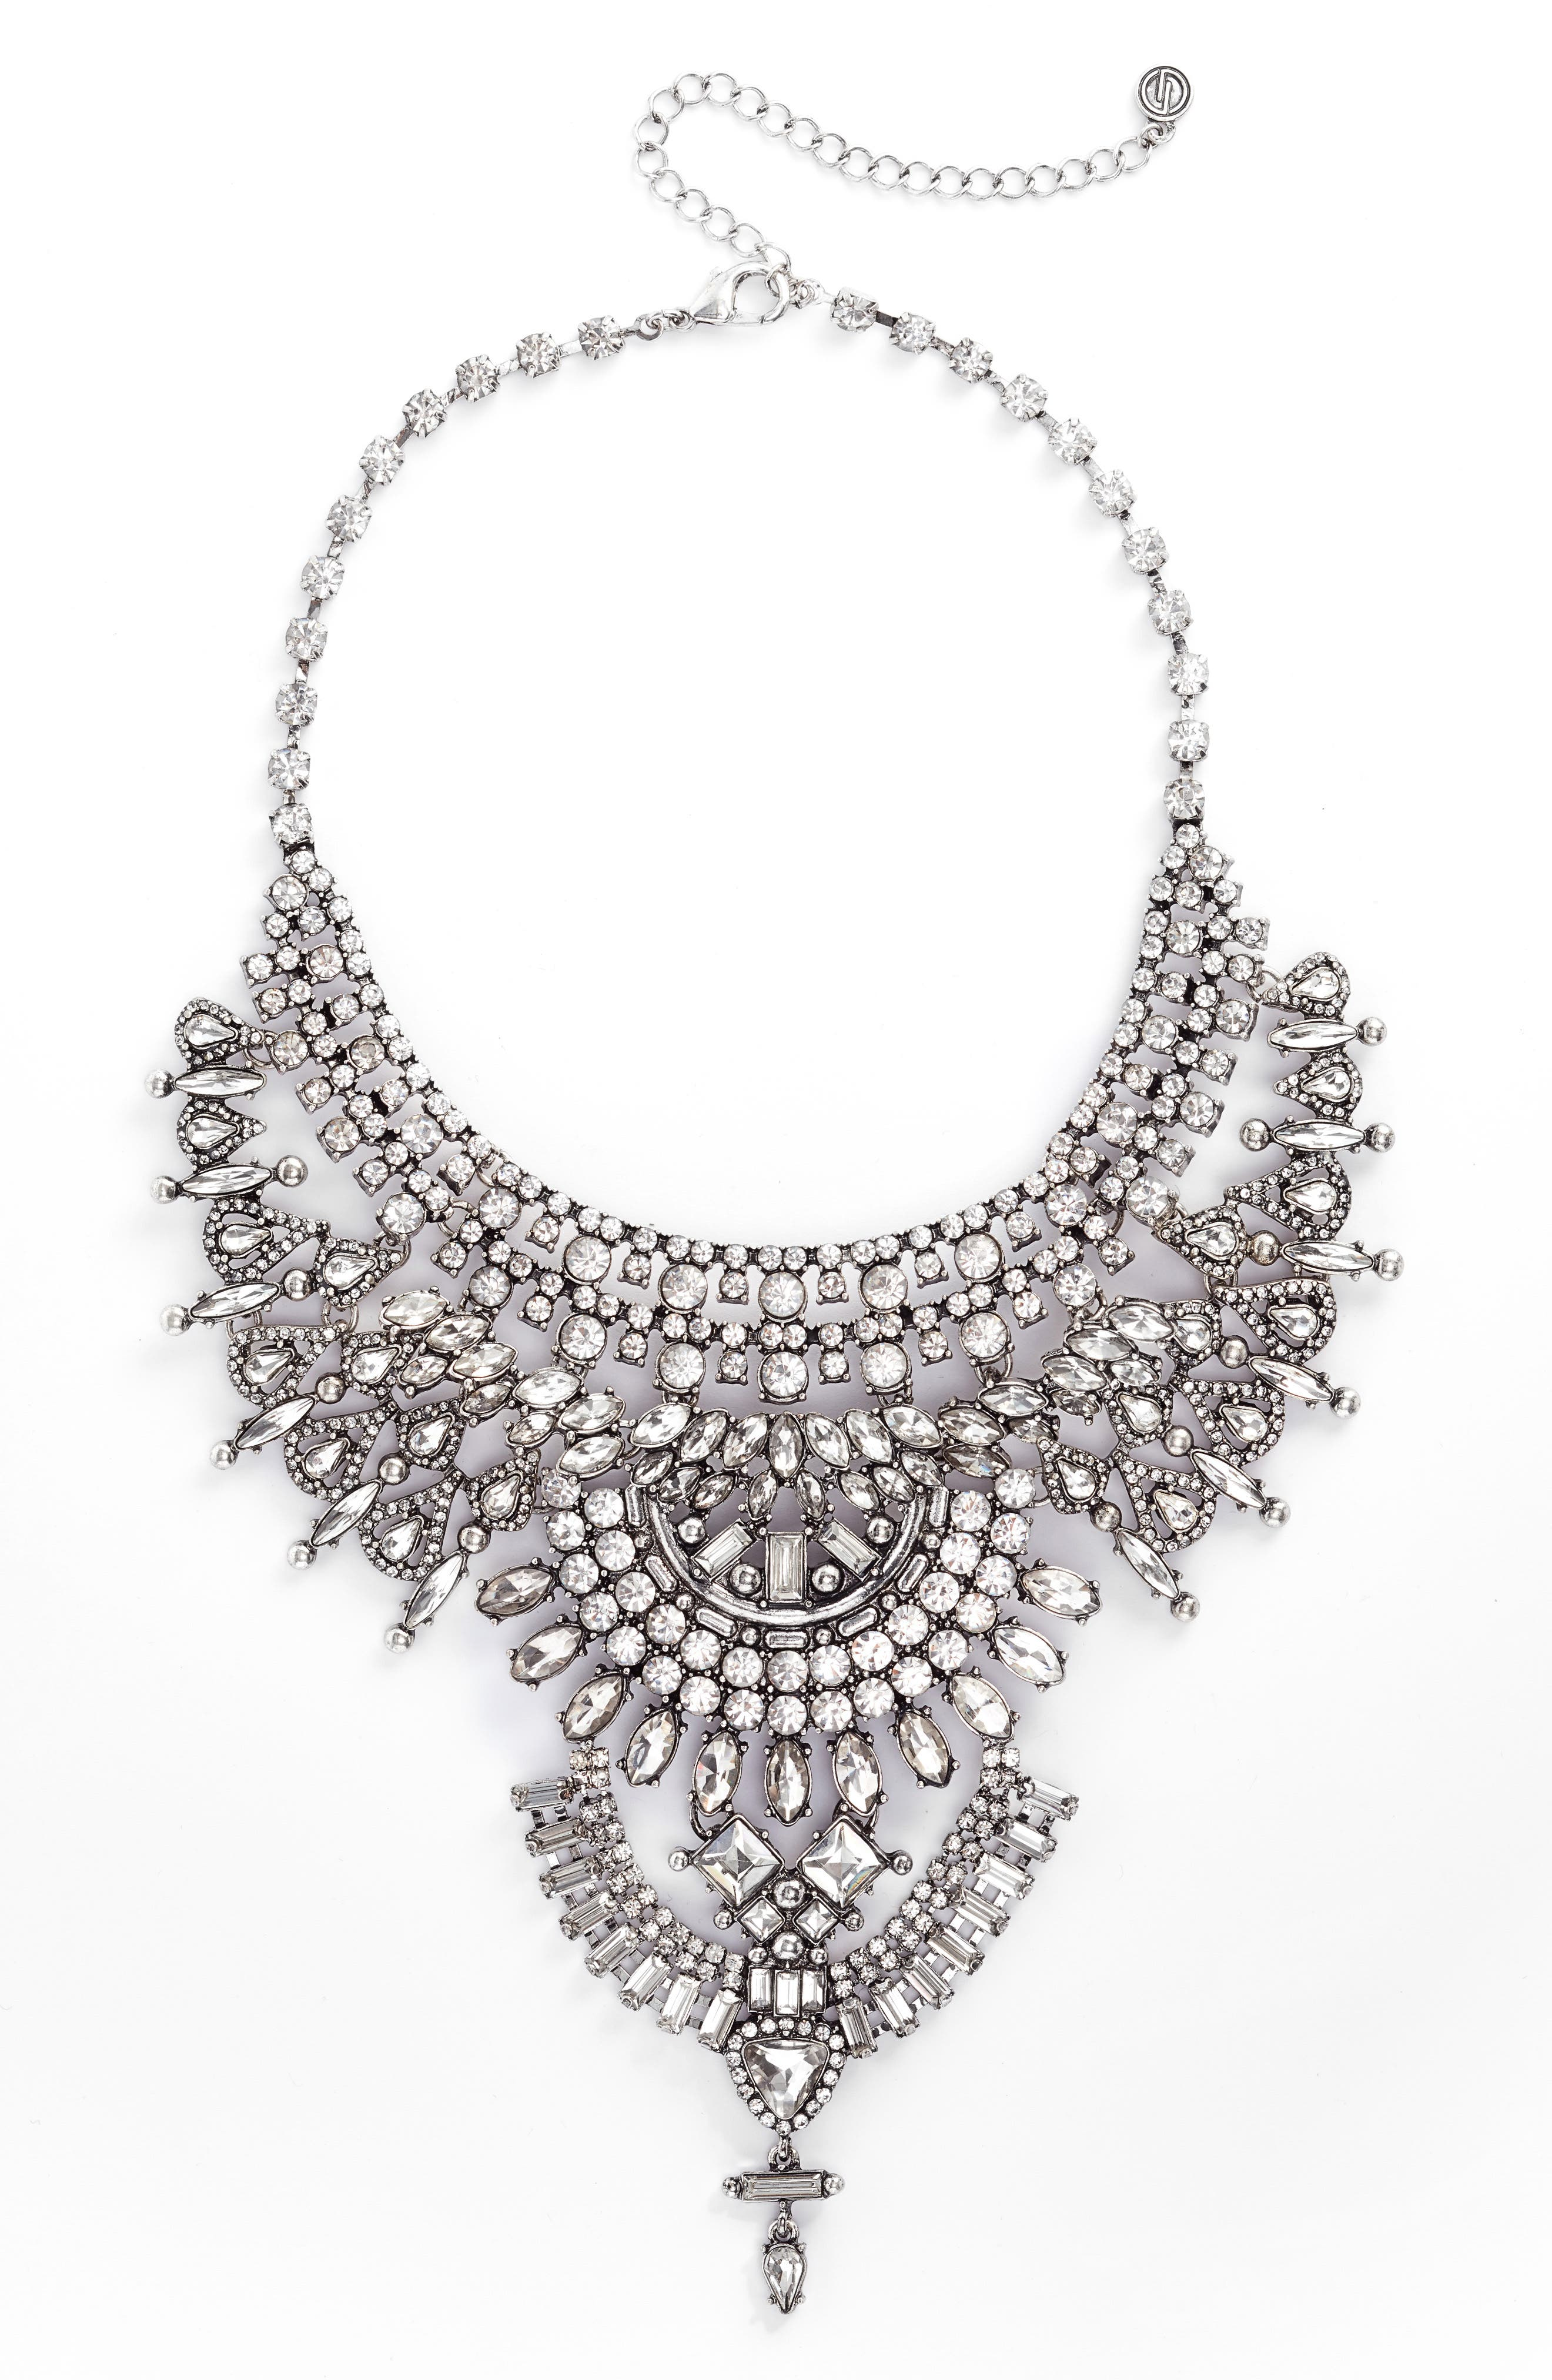 Main Image - DLNLX BY DYLANLEX Chain & Crystal Necklace